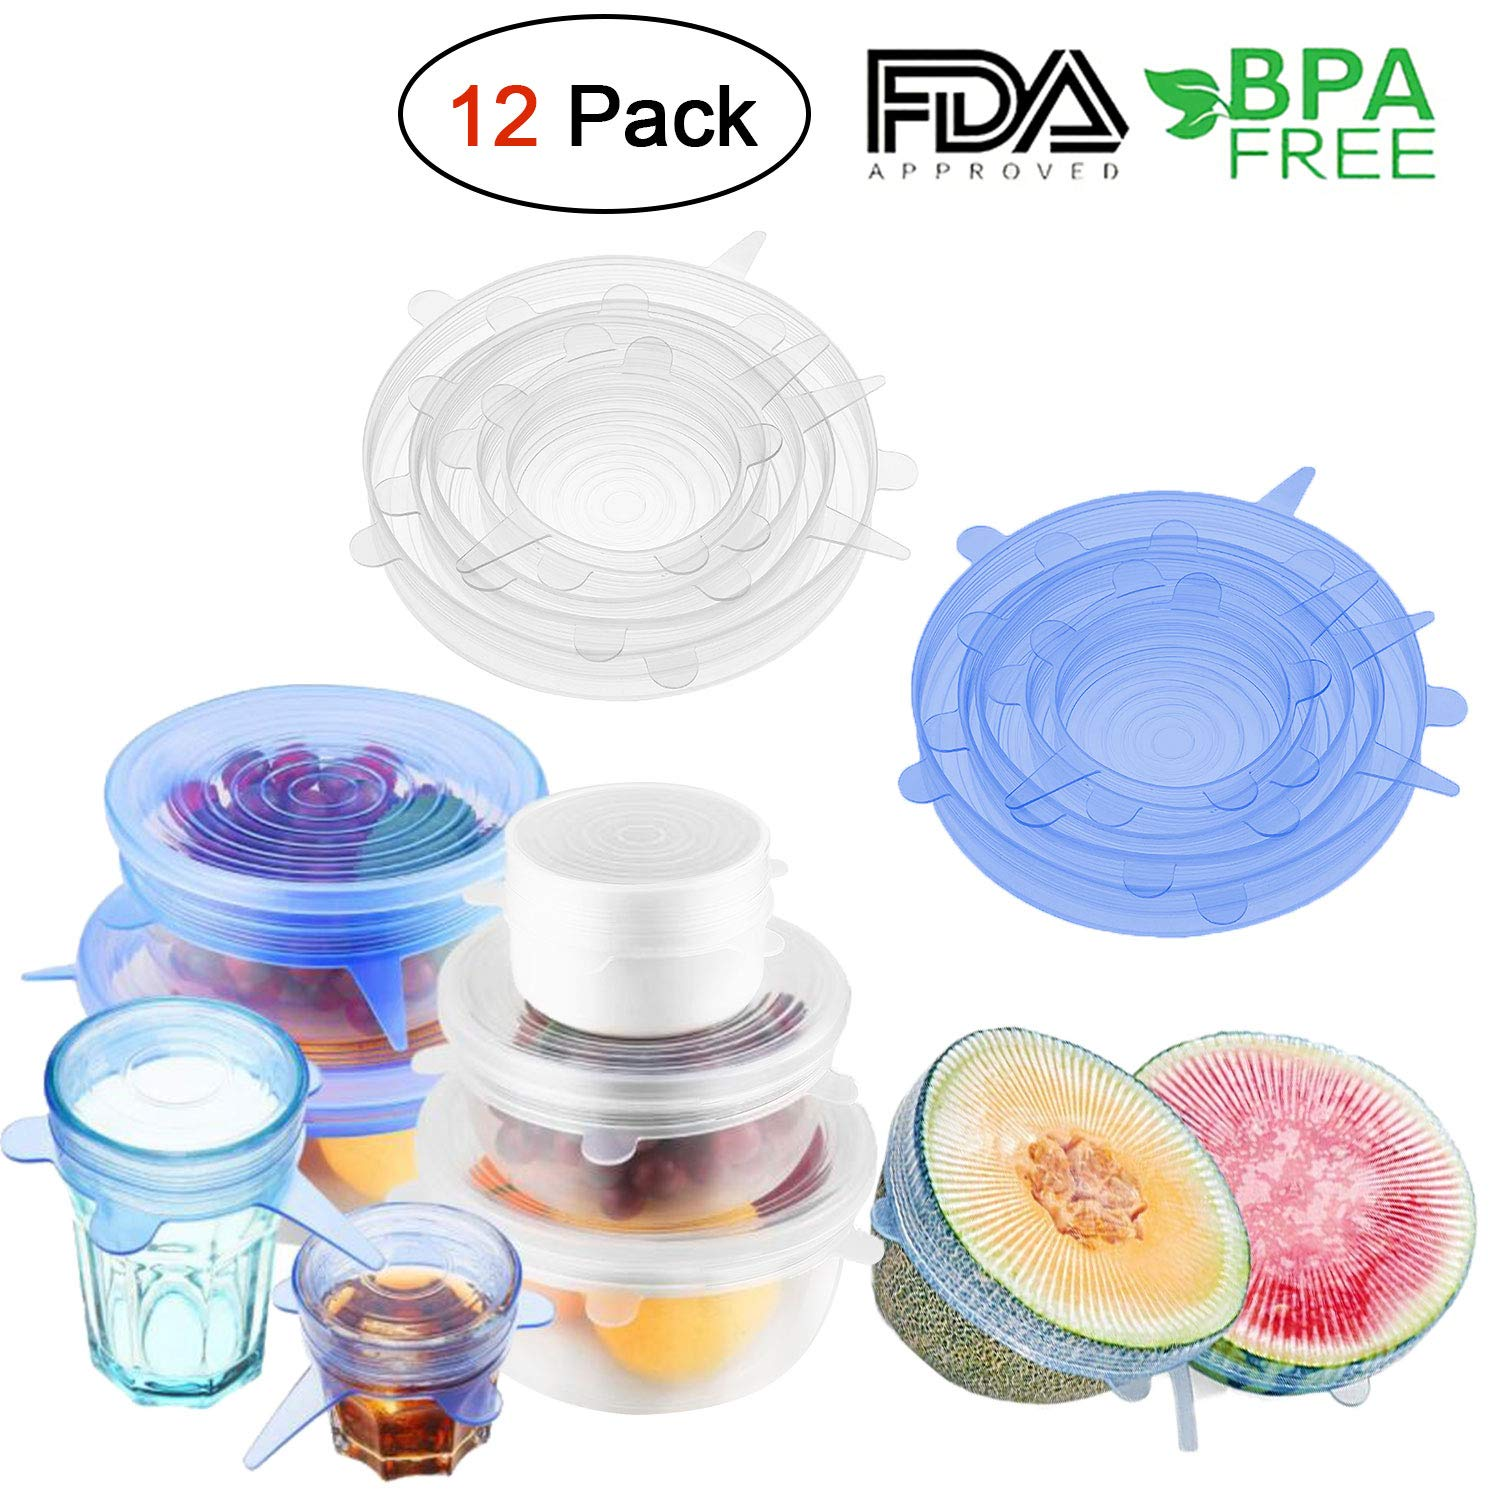 Silicone Stretch Lids 12 Packs Reusable, Durable and Expandable Silicone Covers Fresh Food Cover Fit Various Sizes and Shapes of Containers for Keeping Food Fresh, Dishwasher and Freezer Safe